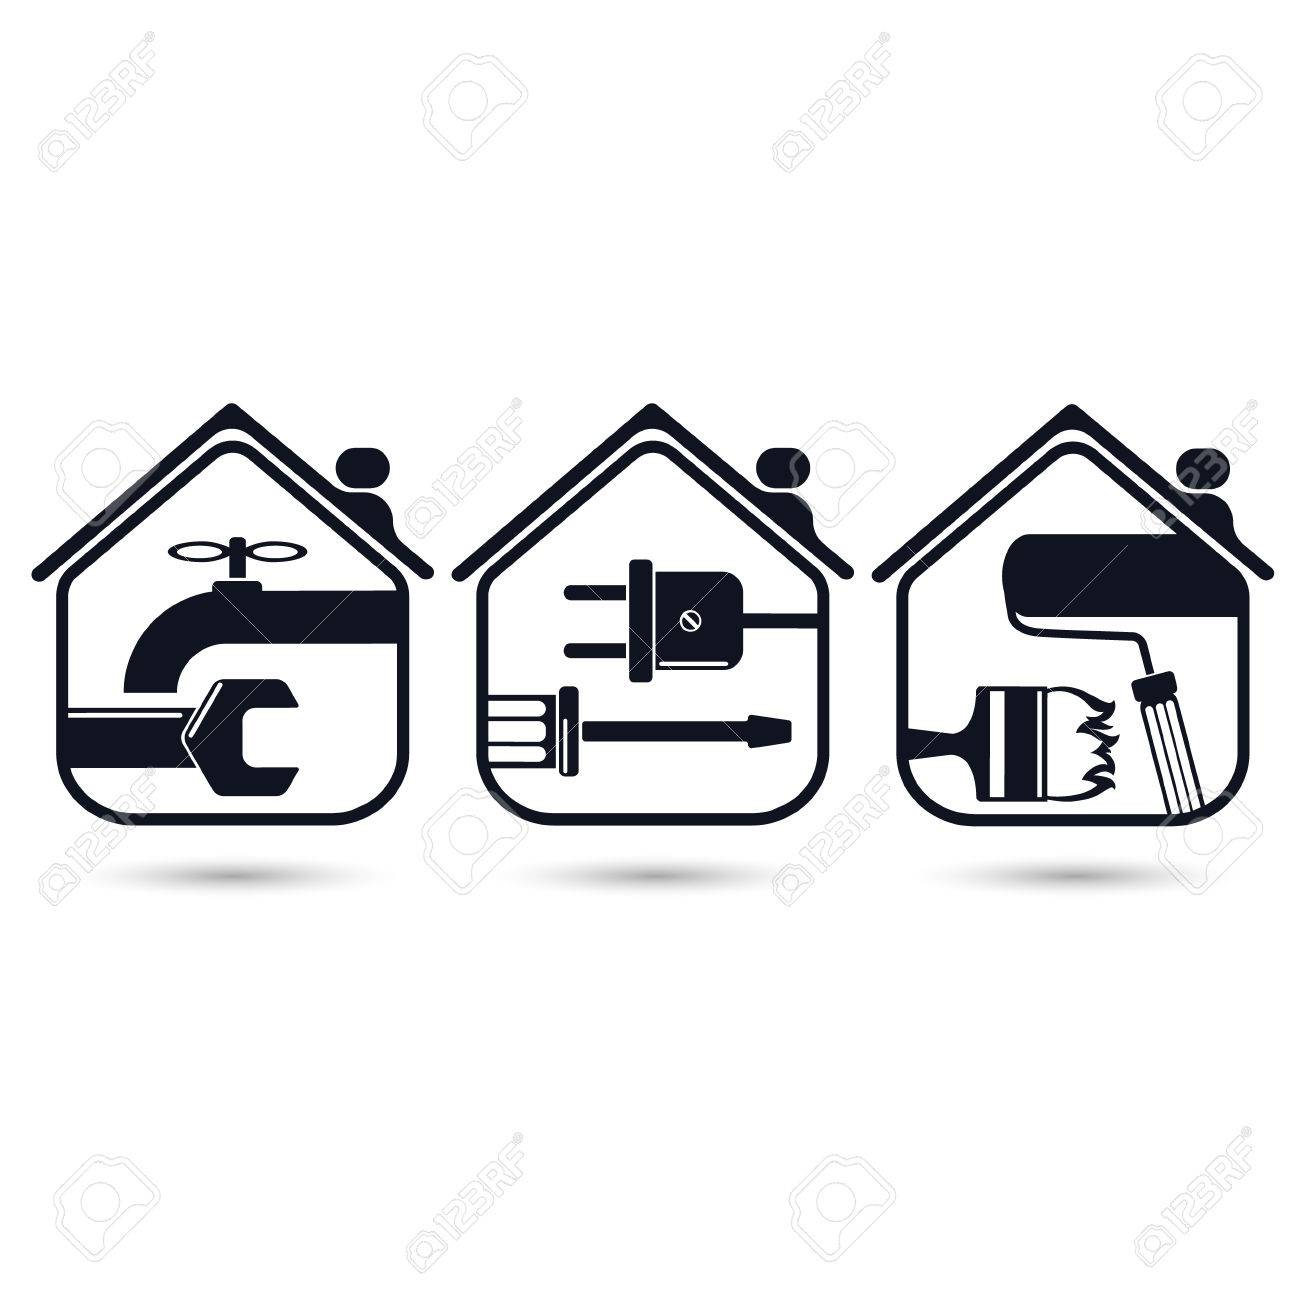 Symbols for home renovation repair tools royalty free cliparts symbols for home renovation repair tools stock vector 52404922 buycottarizona Image collections